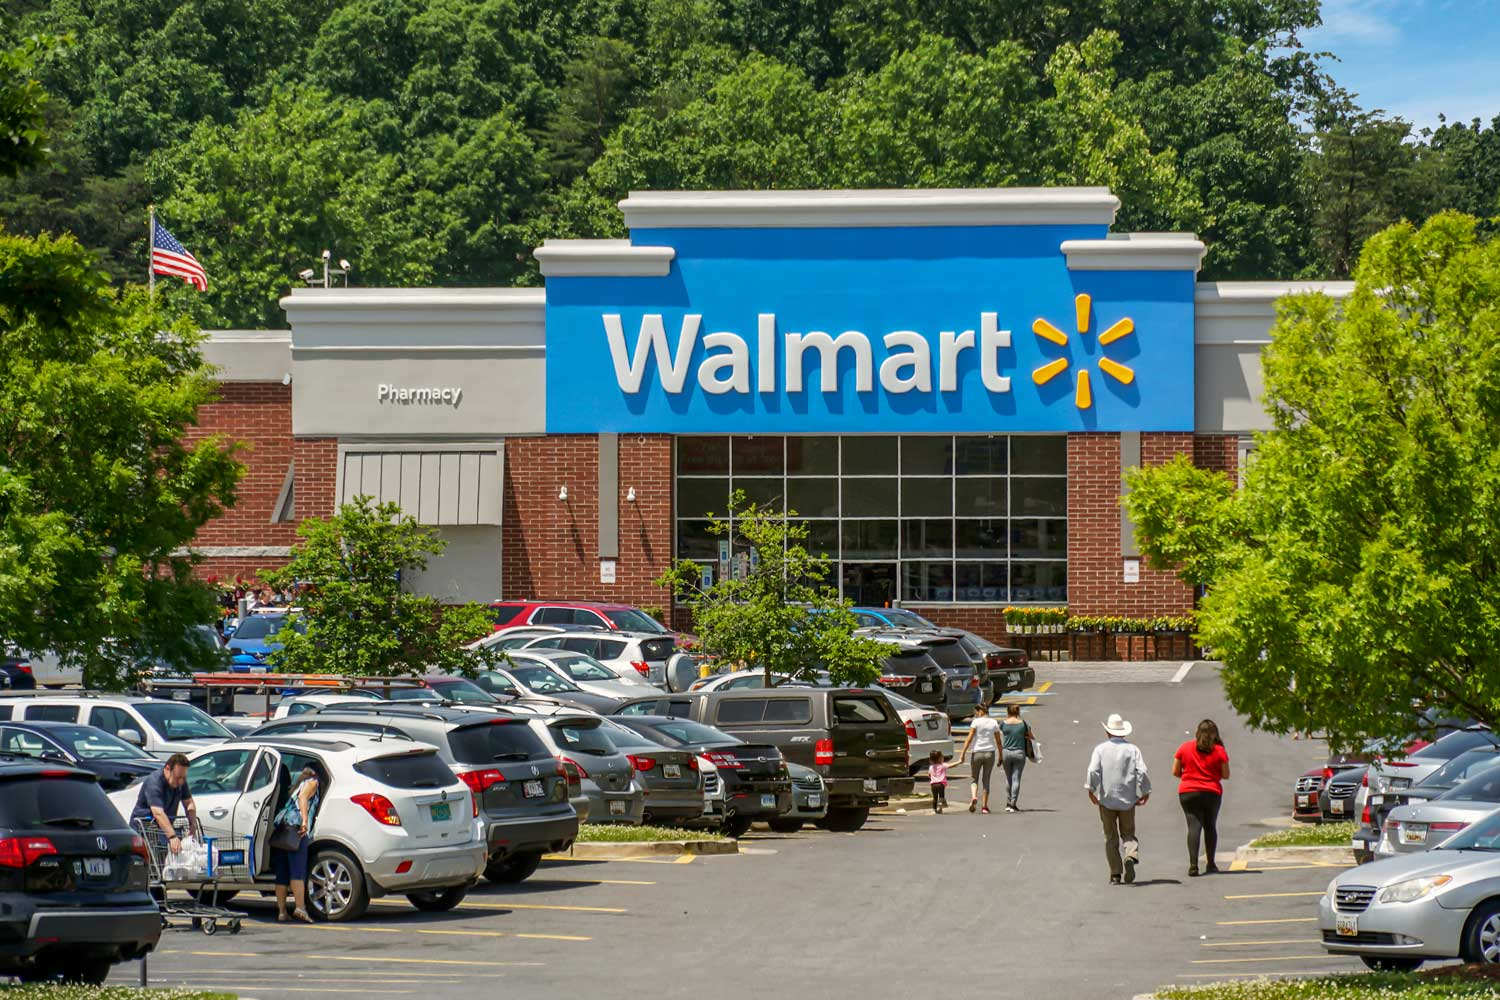 Walmart is 10 minutes from Columbia Park Apartments in Landover, MD